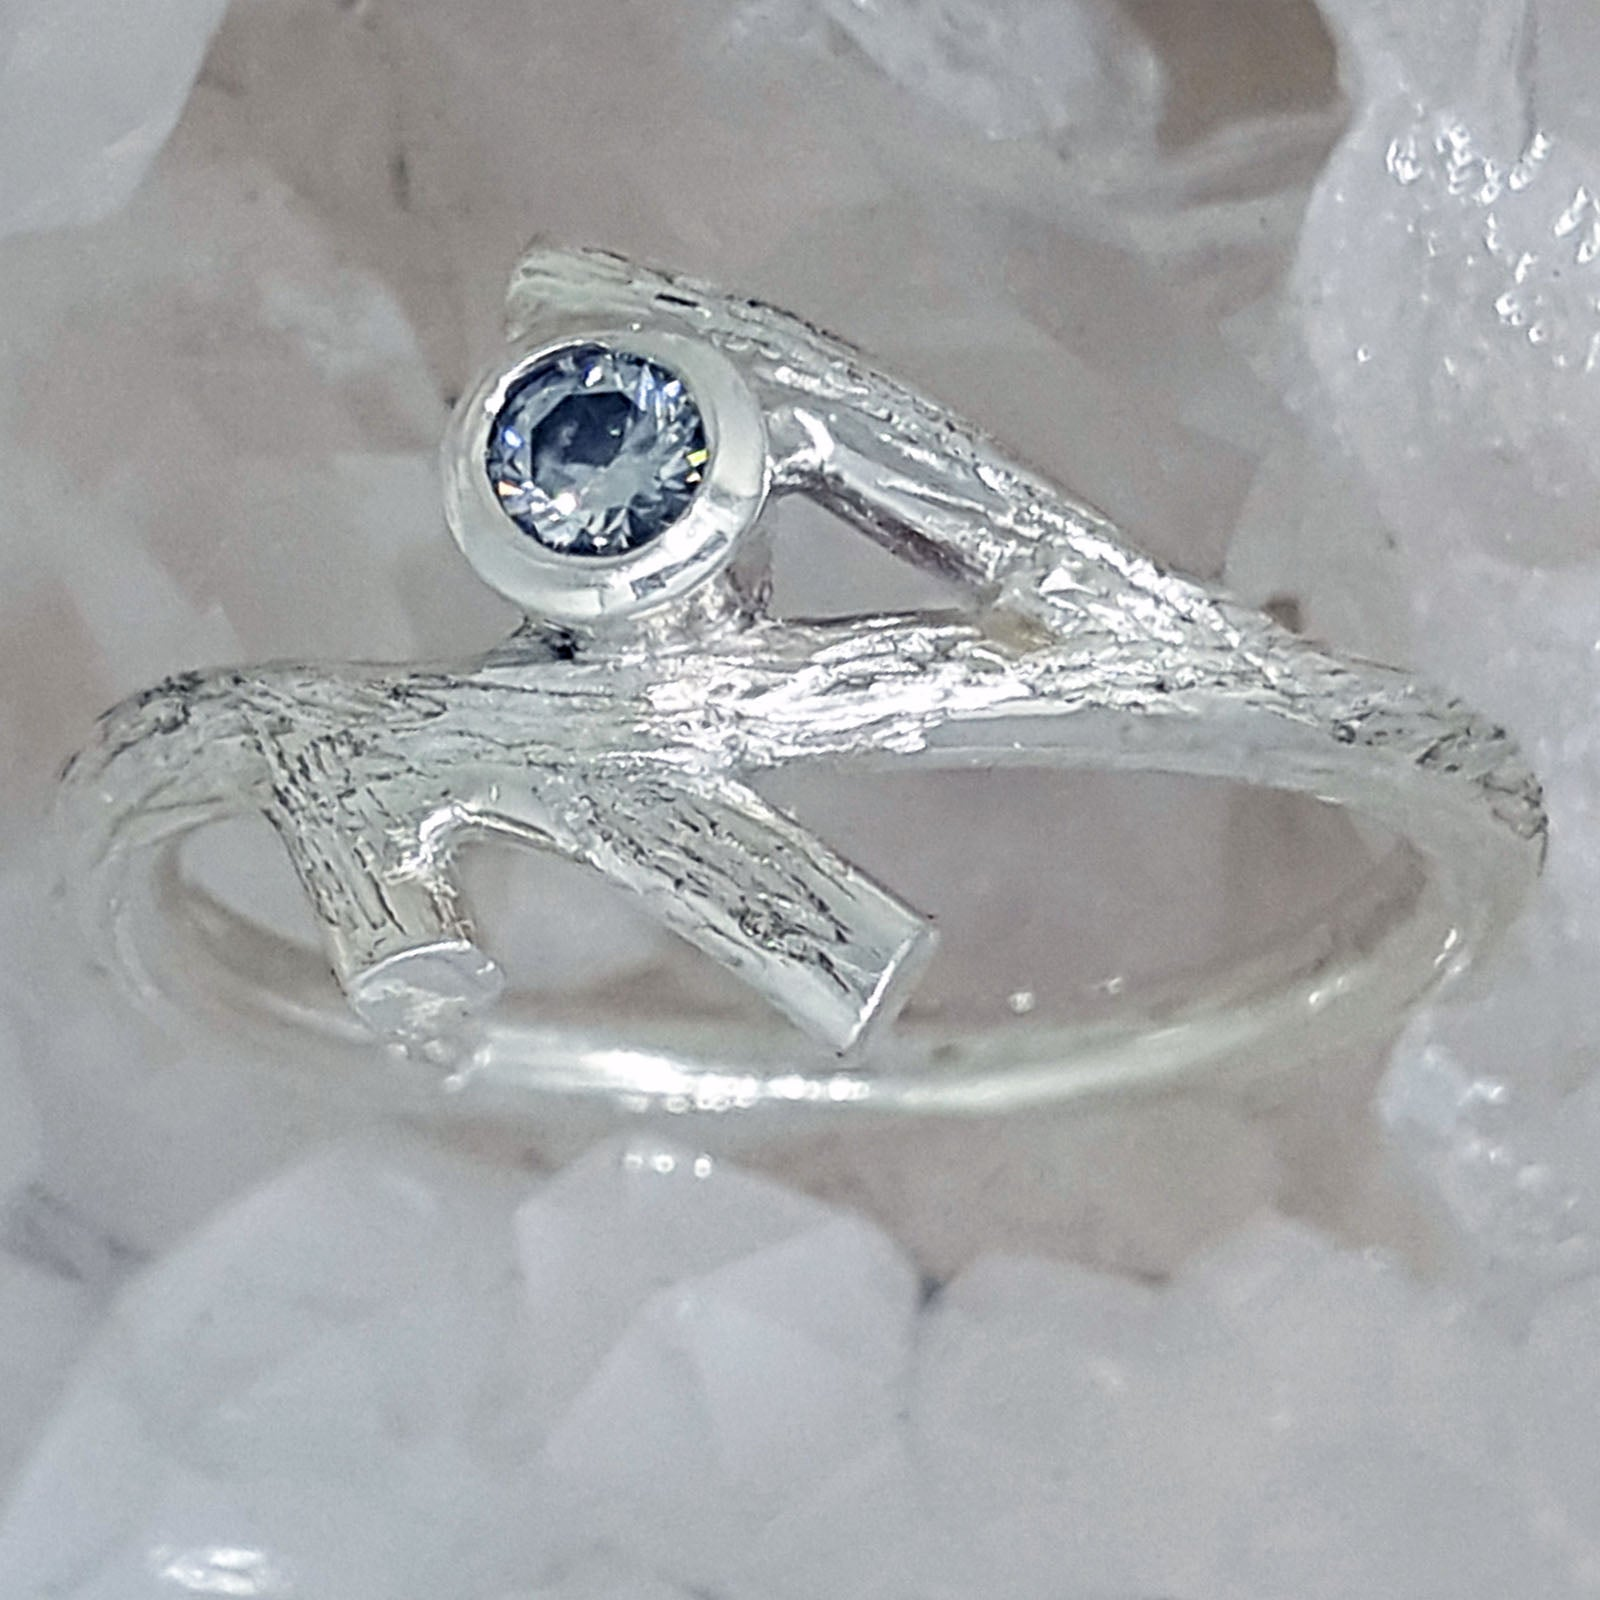 ring ct grown emerald lab cut rings blue twig engagement sapphire myshoplah